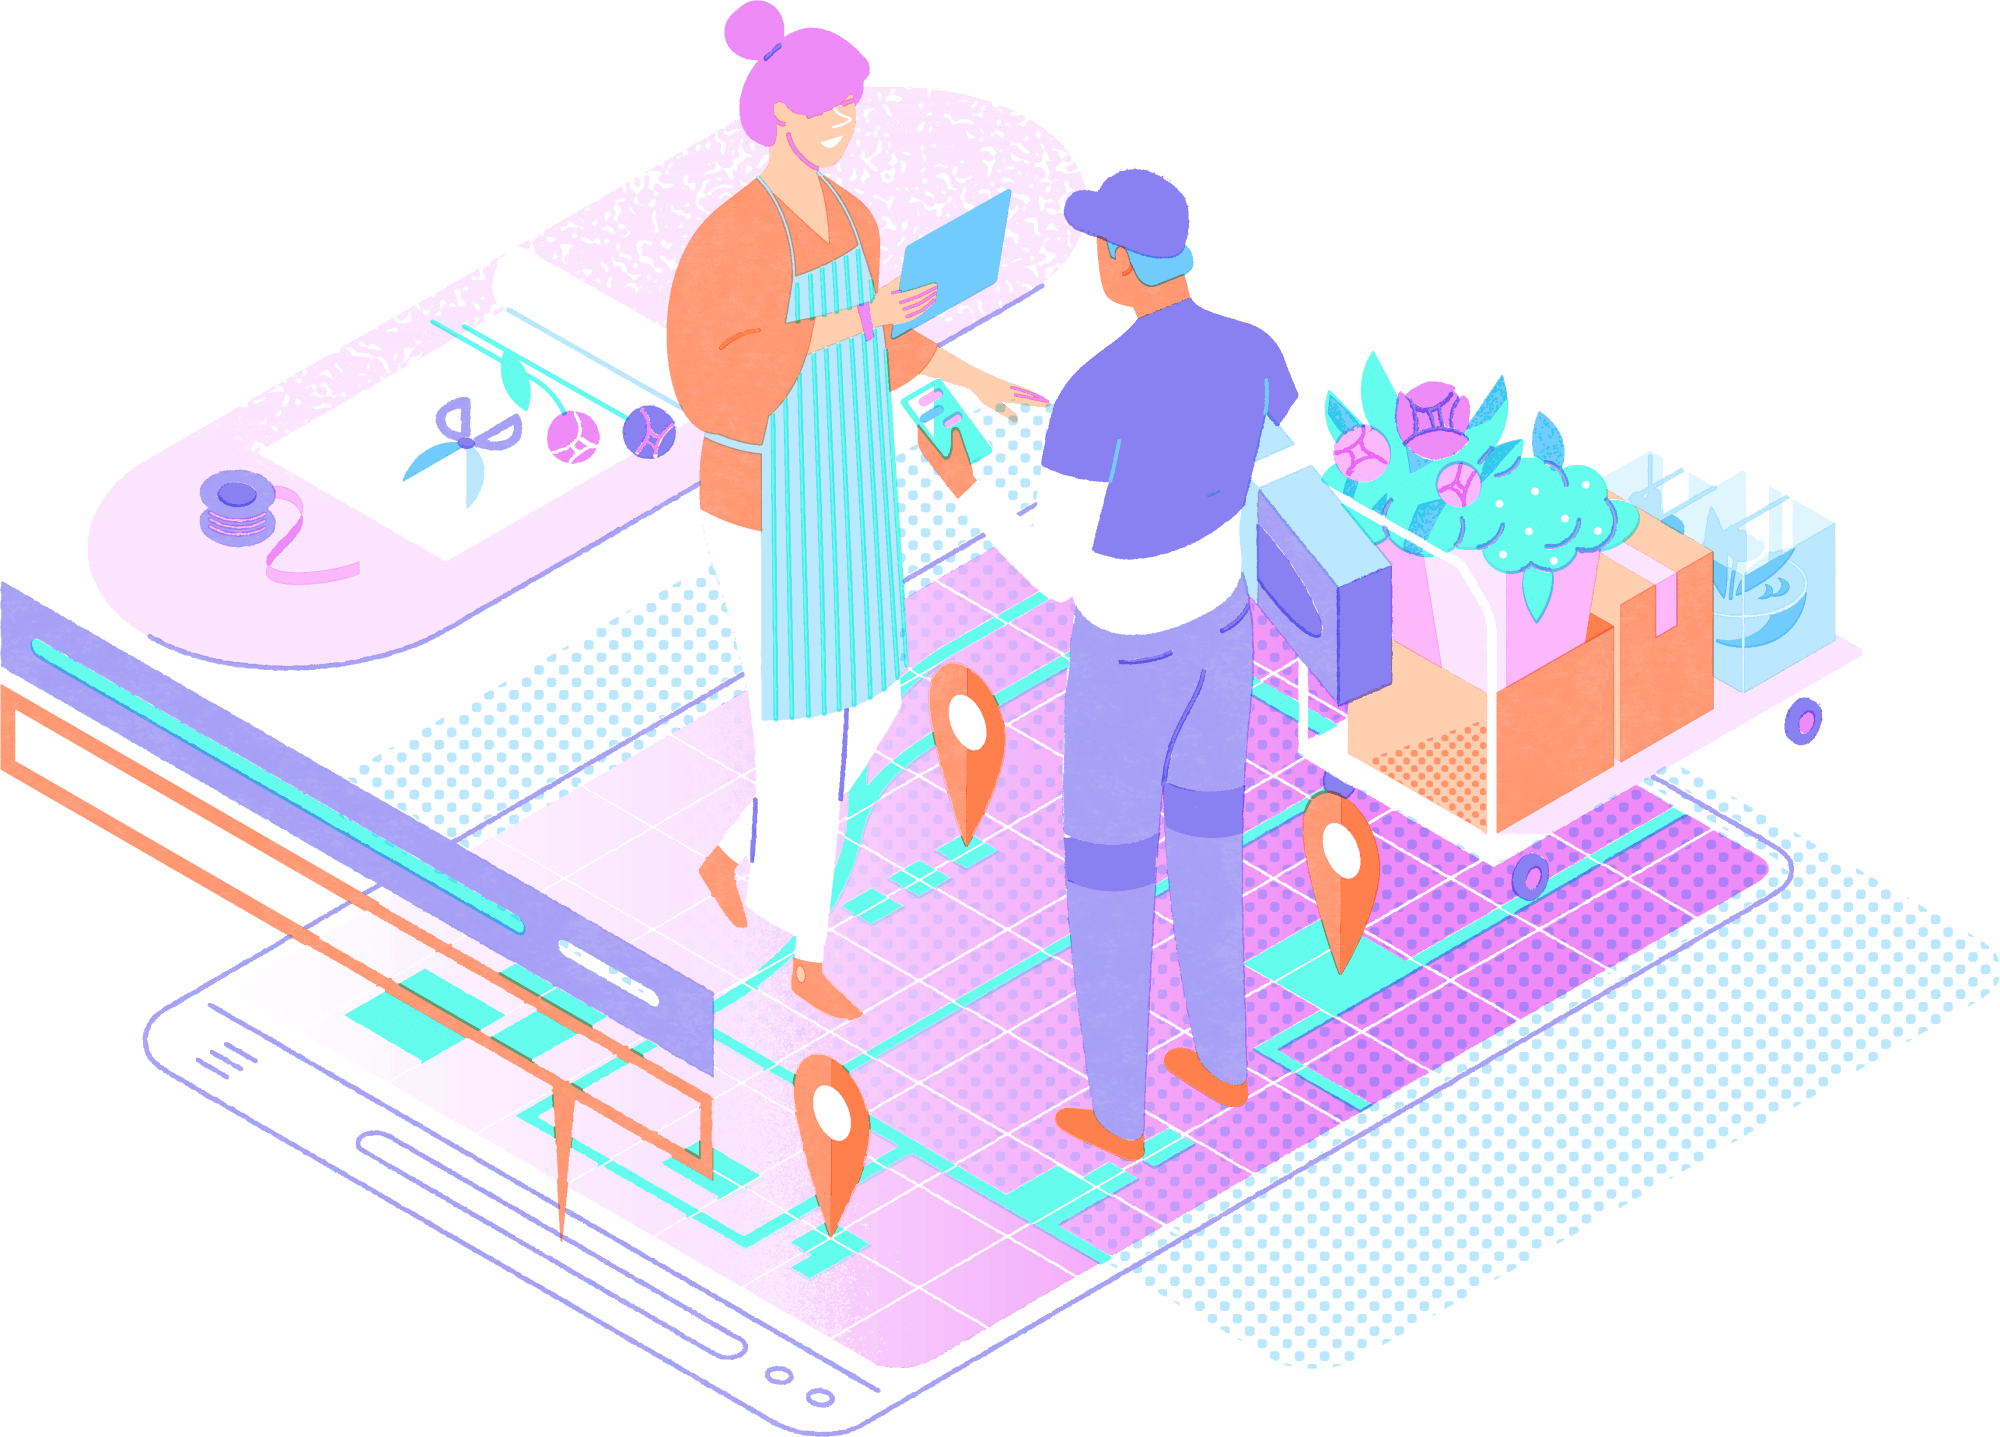 Abstract illustration of customer service representatives